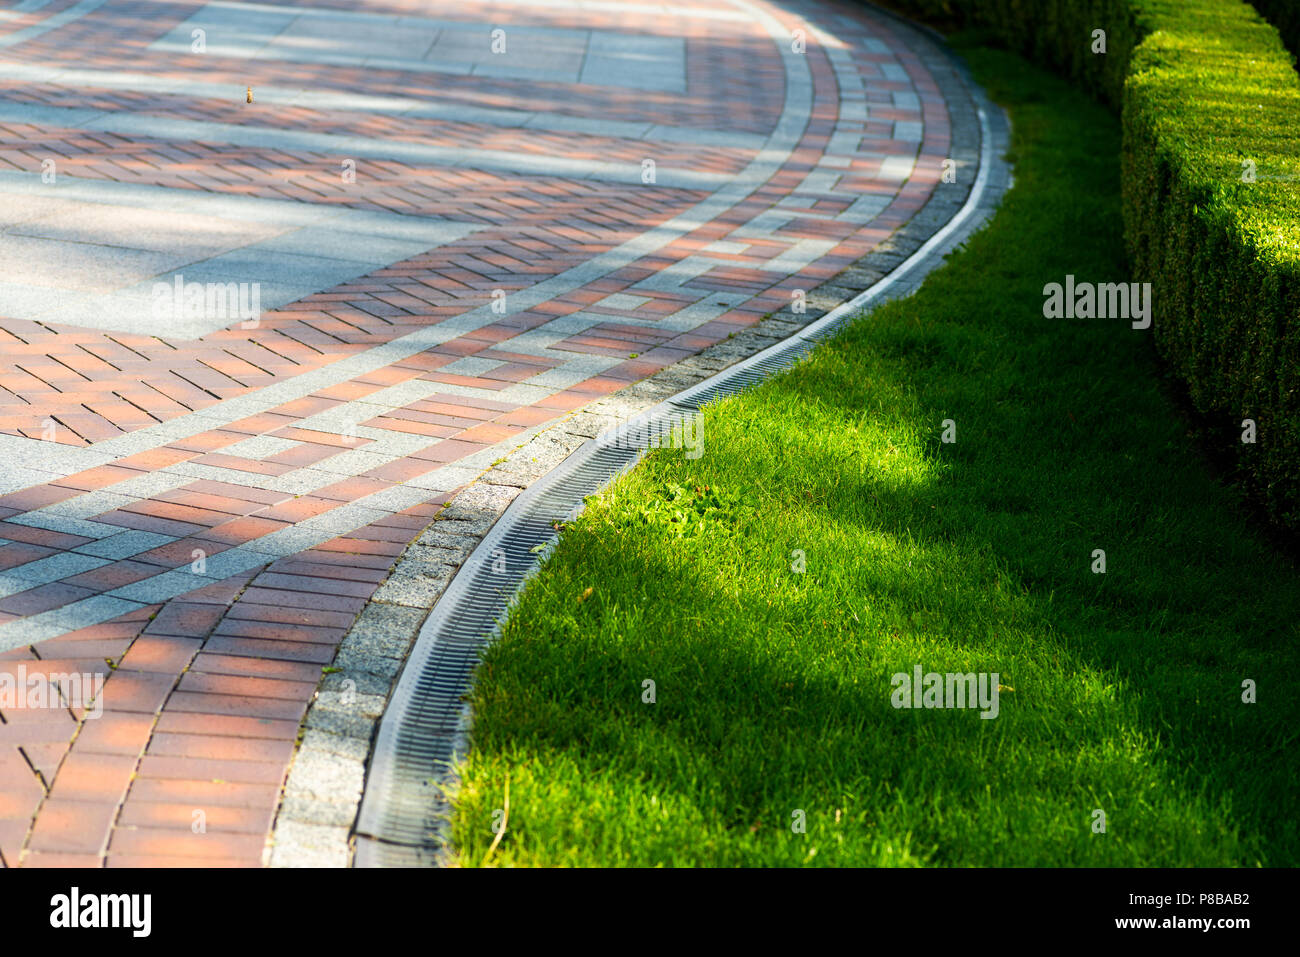 Pavement Tile And Shorn Grass In Landscape Design Stock Photo Alamy